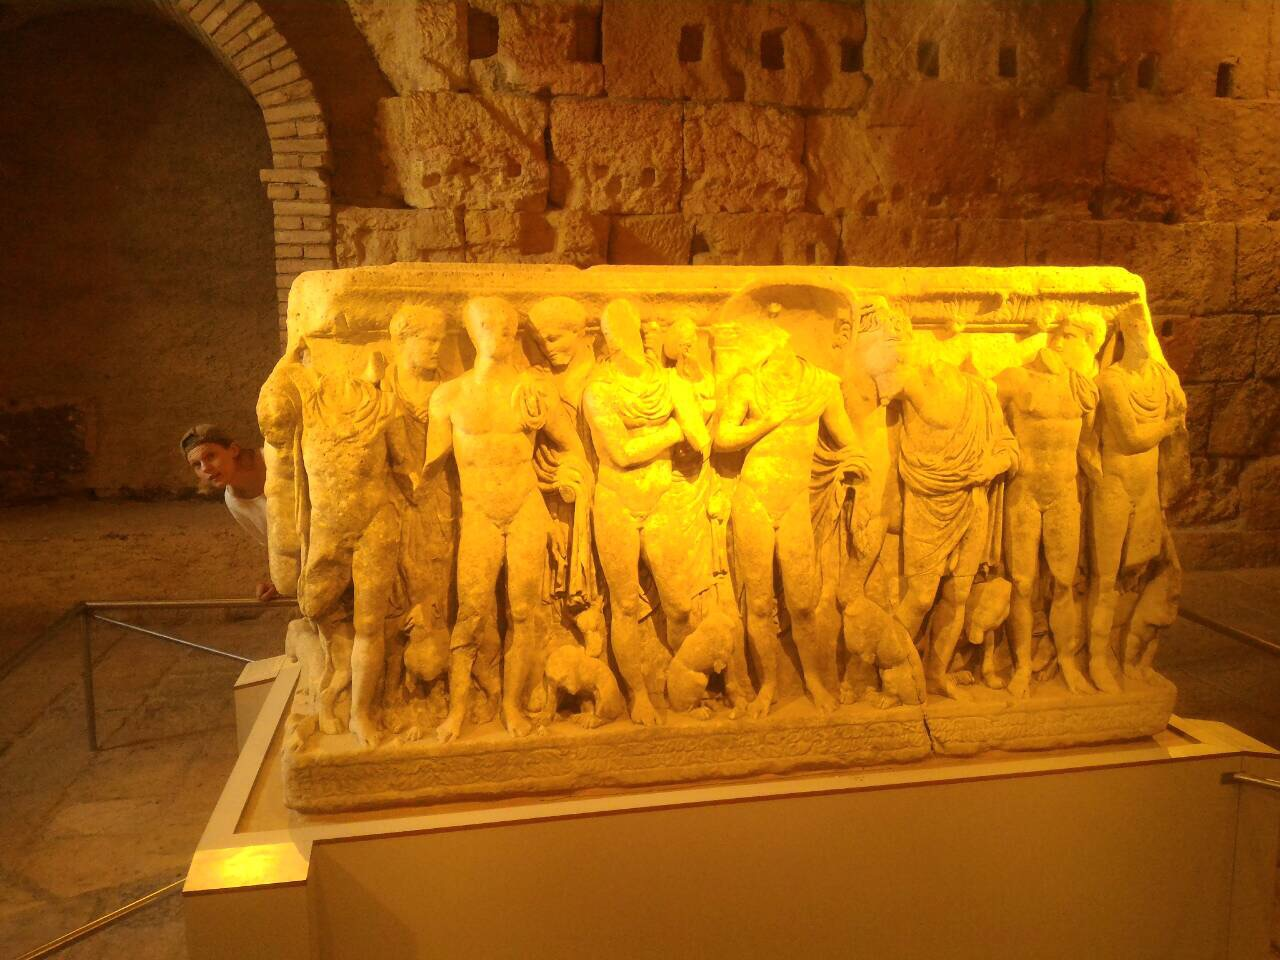 Sarcophagus preserved in the circus and forum museum.